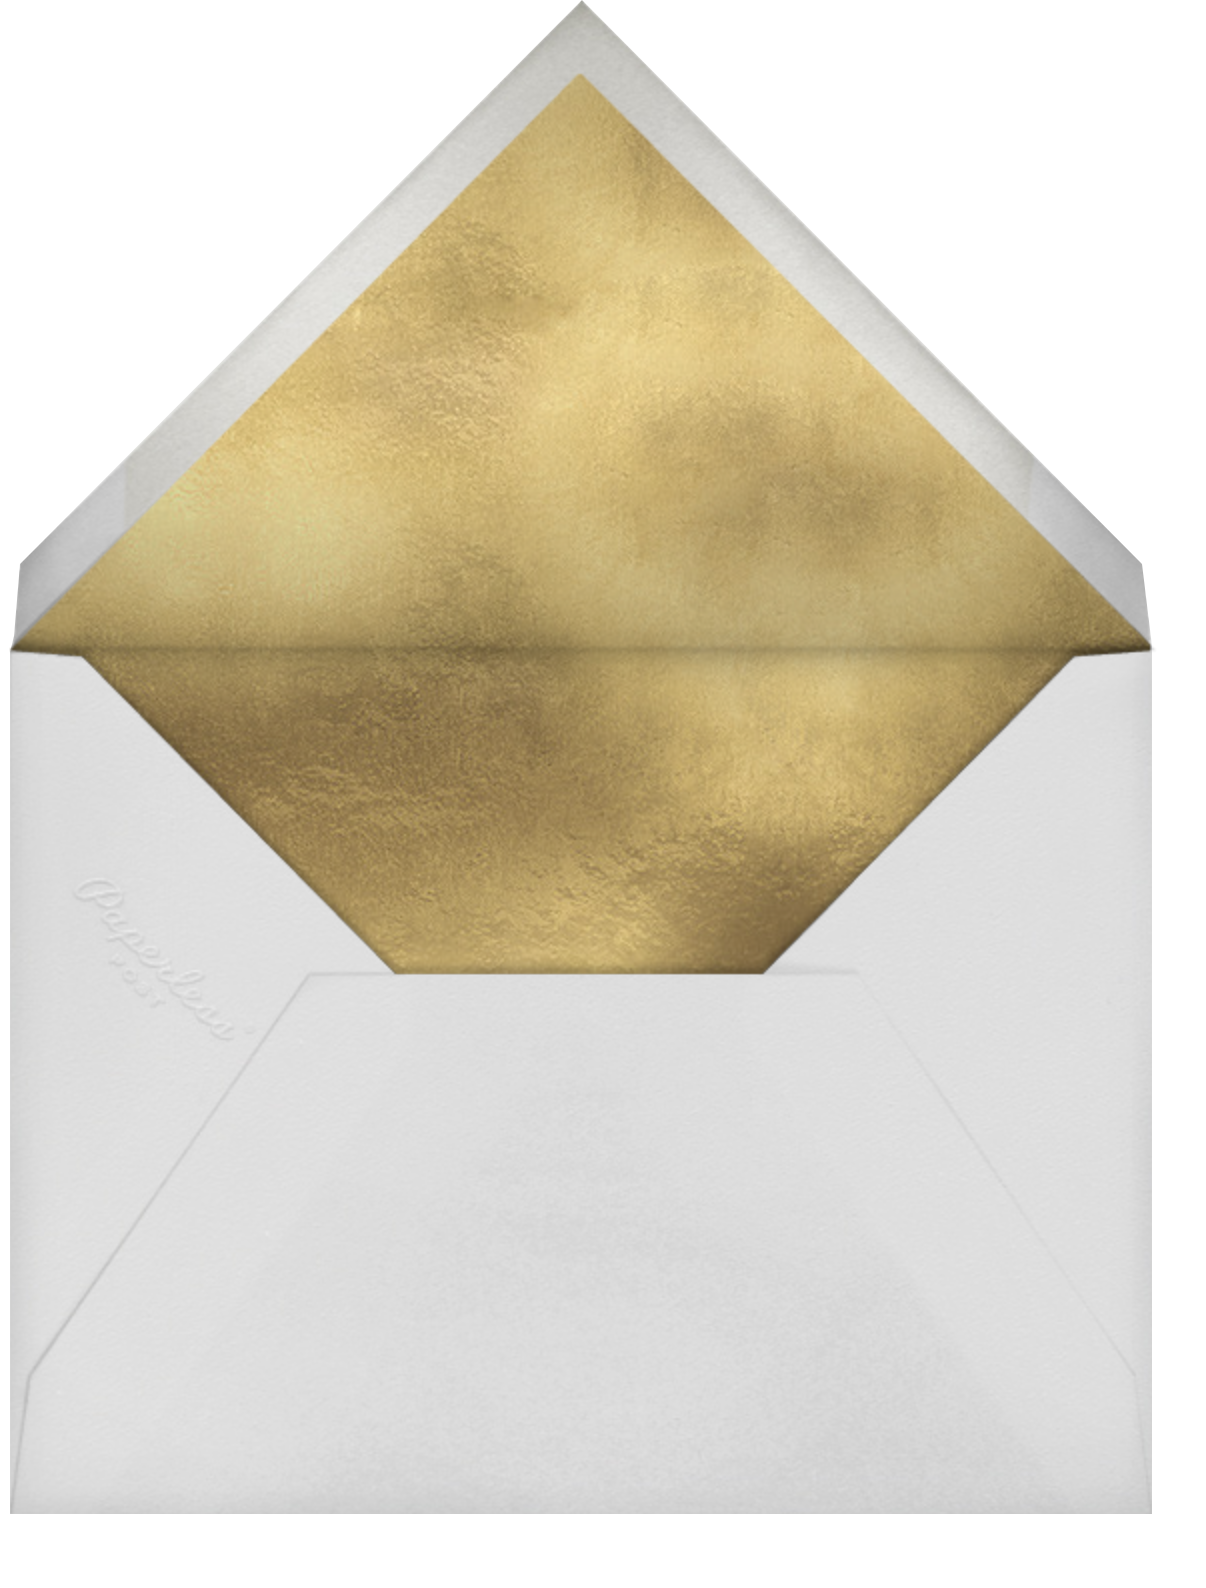 Better Daisies (Invitation) - White - Mr. Boddington's Studio - All - envelope back